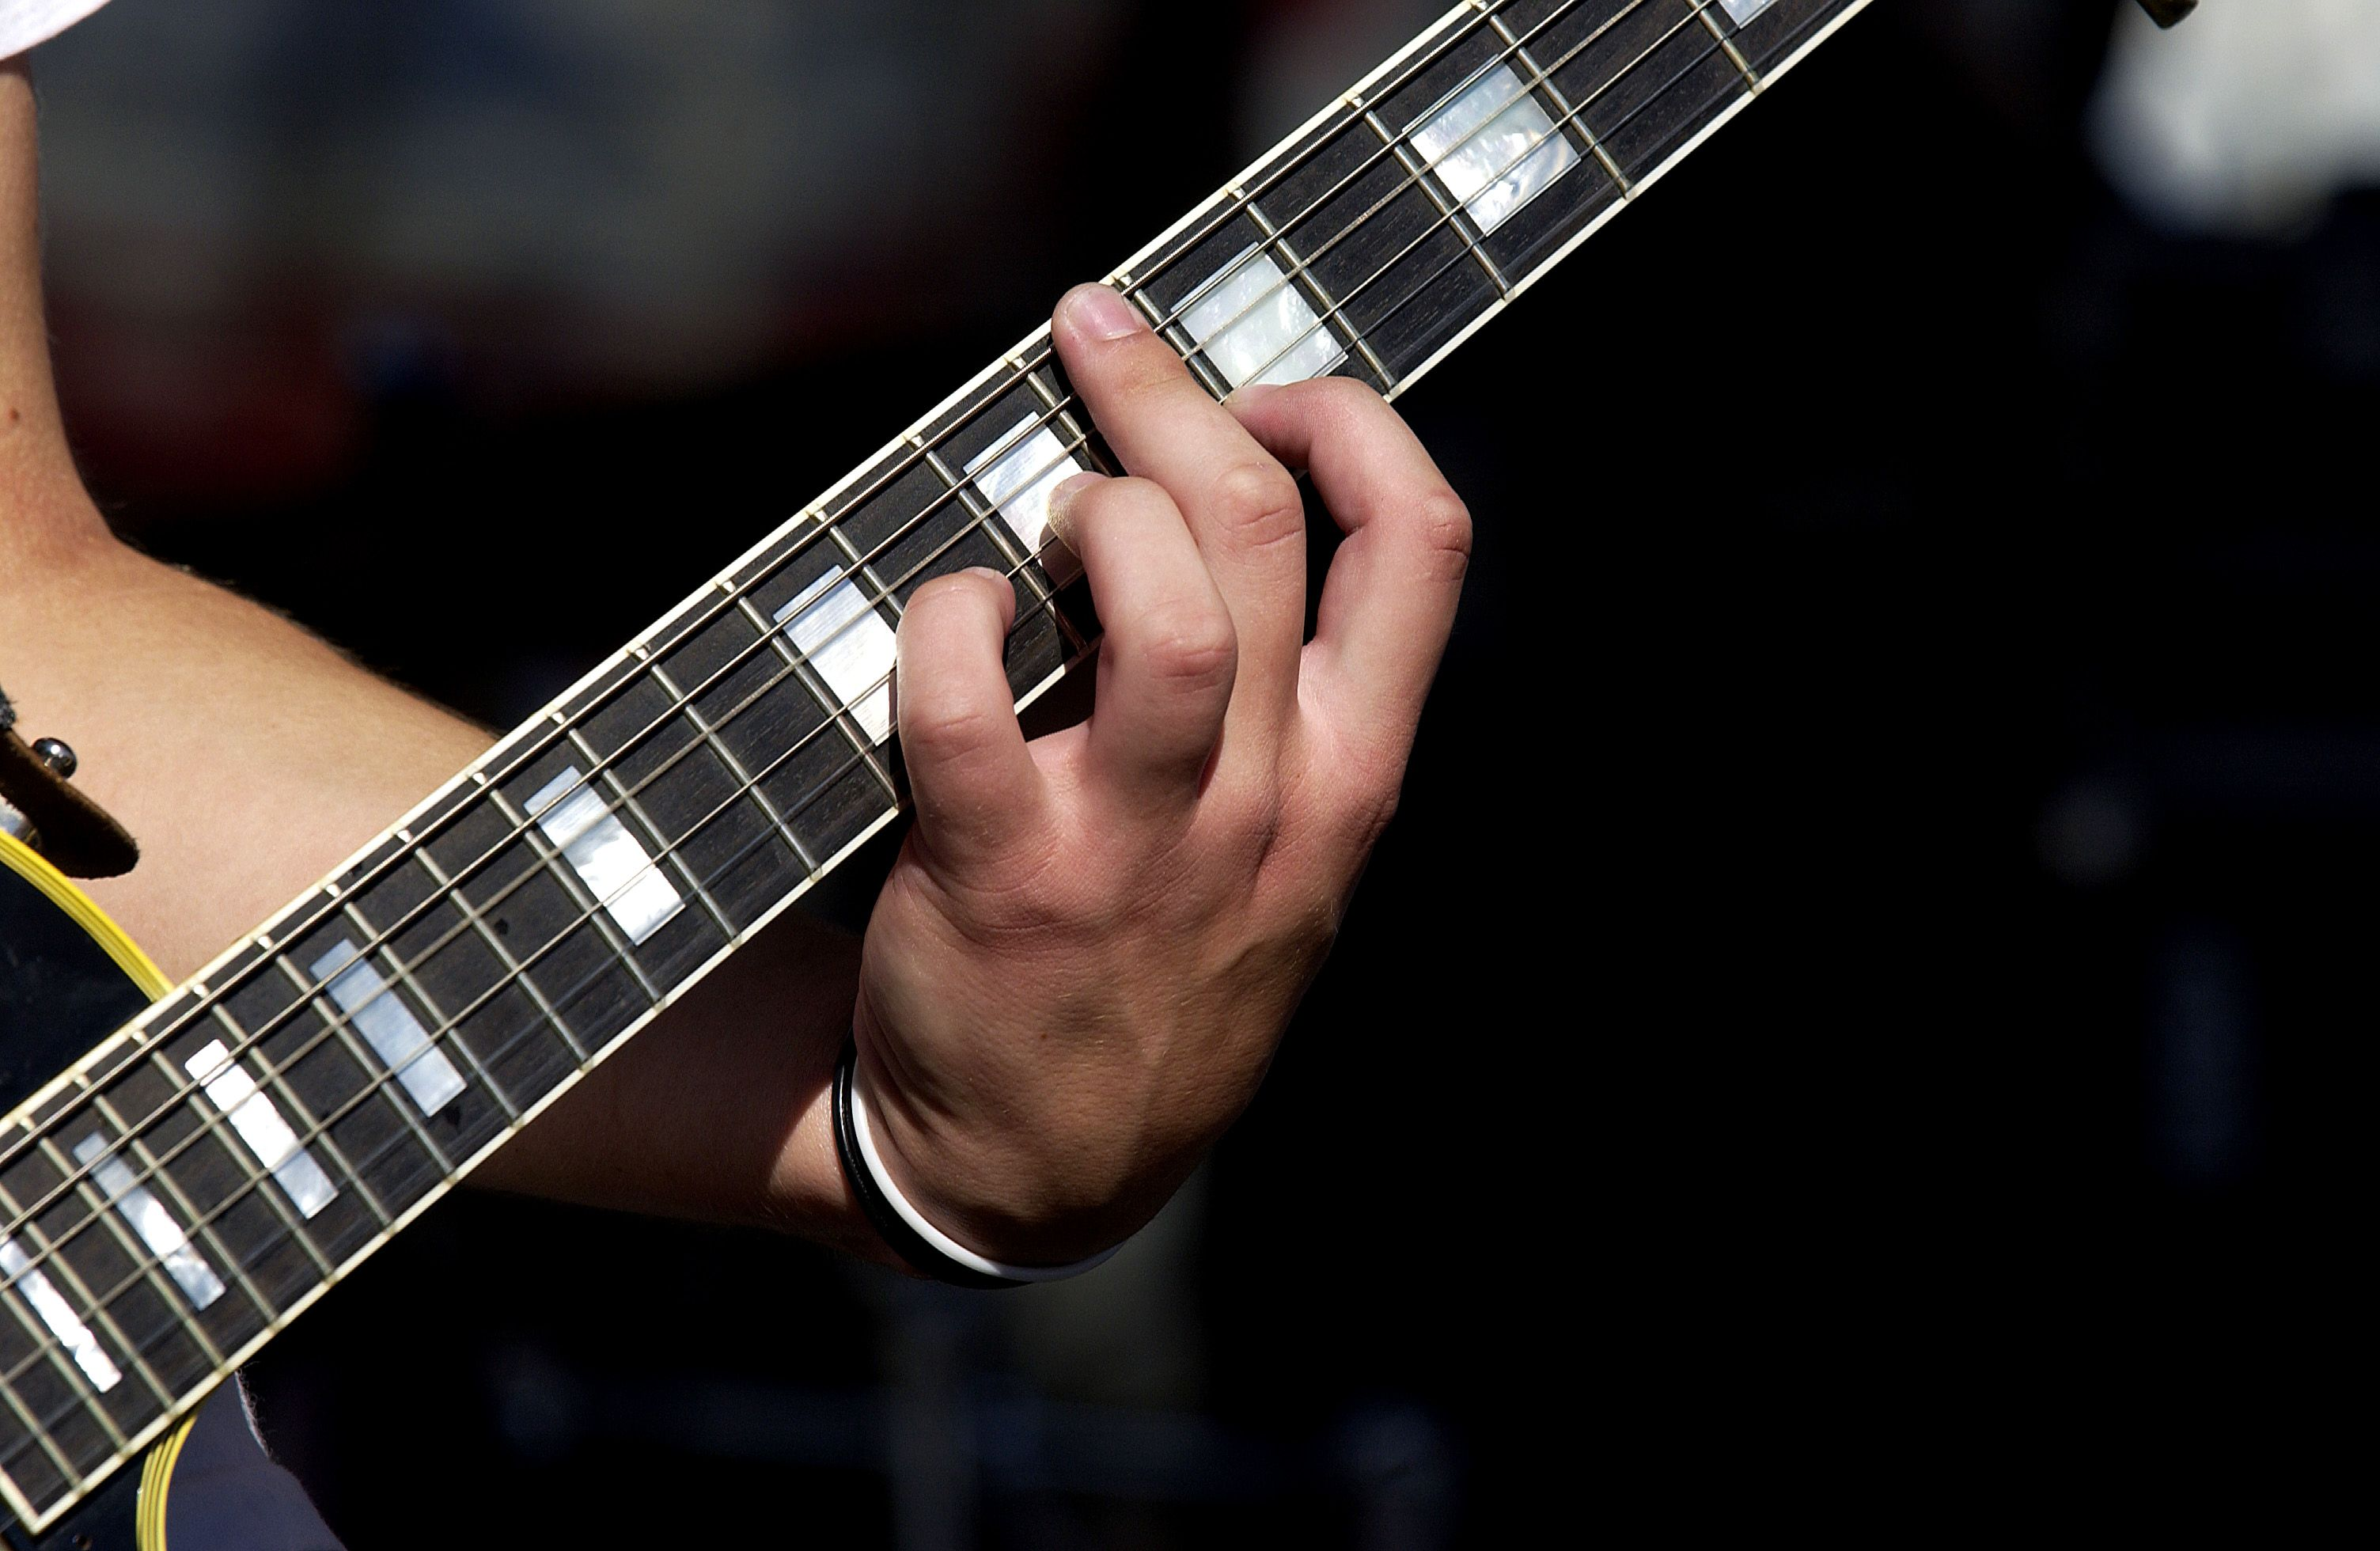 Positions Of The Pentatonic Scale For Guitar